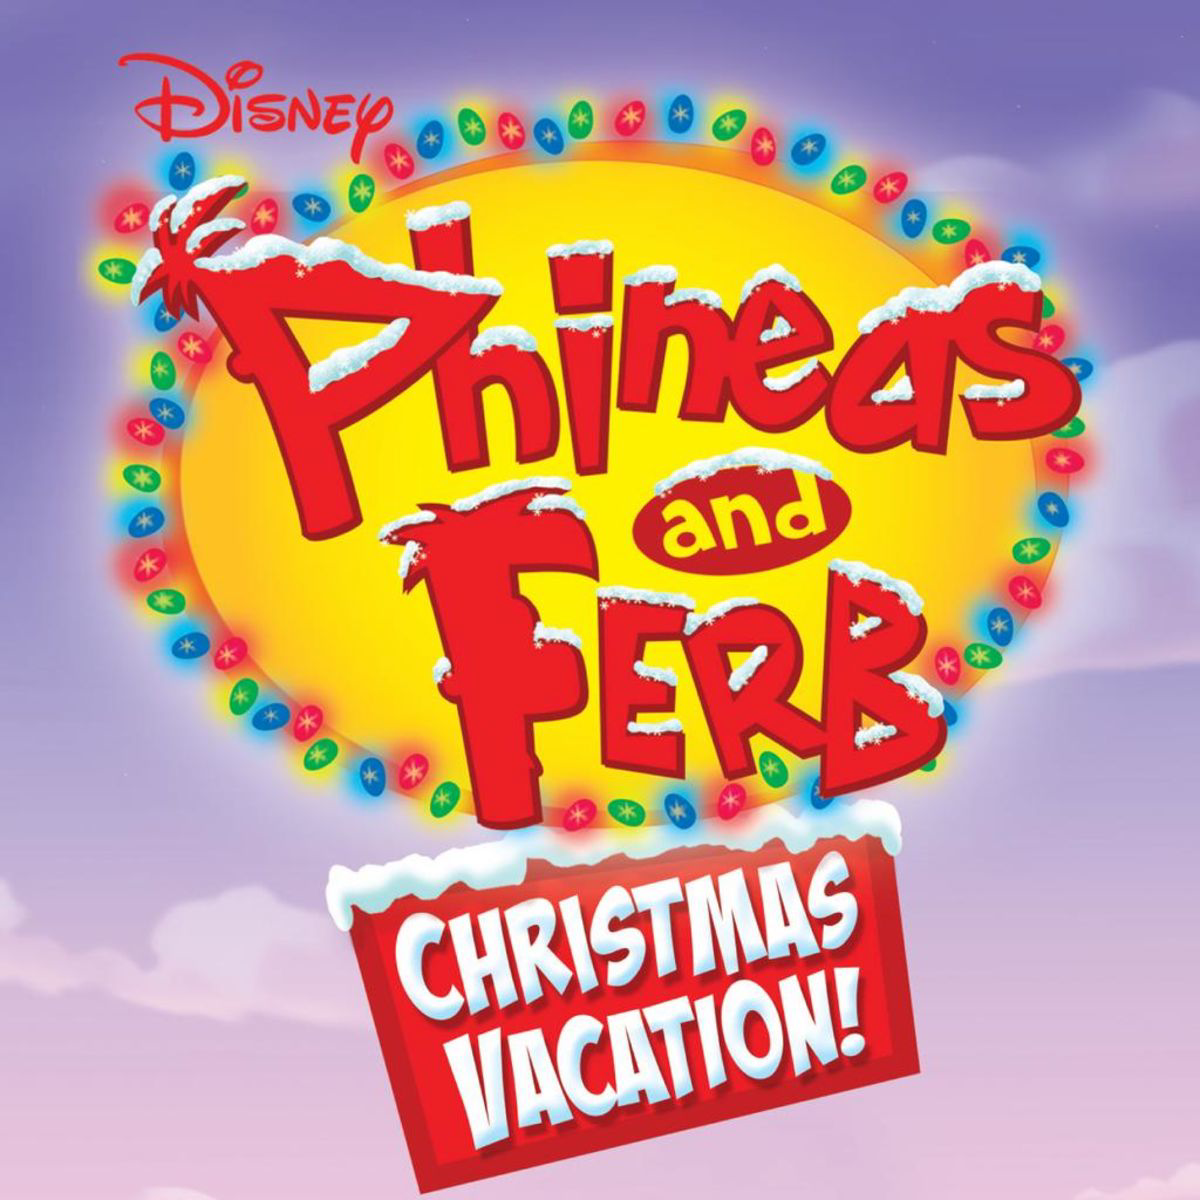 Phineas and Ferb Christmas Vacation! (soundtrack)